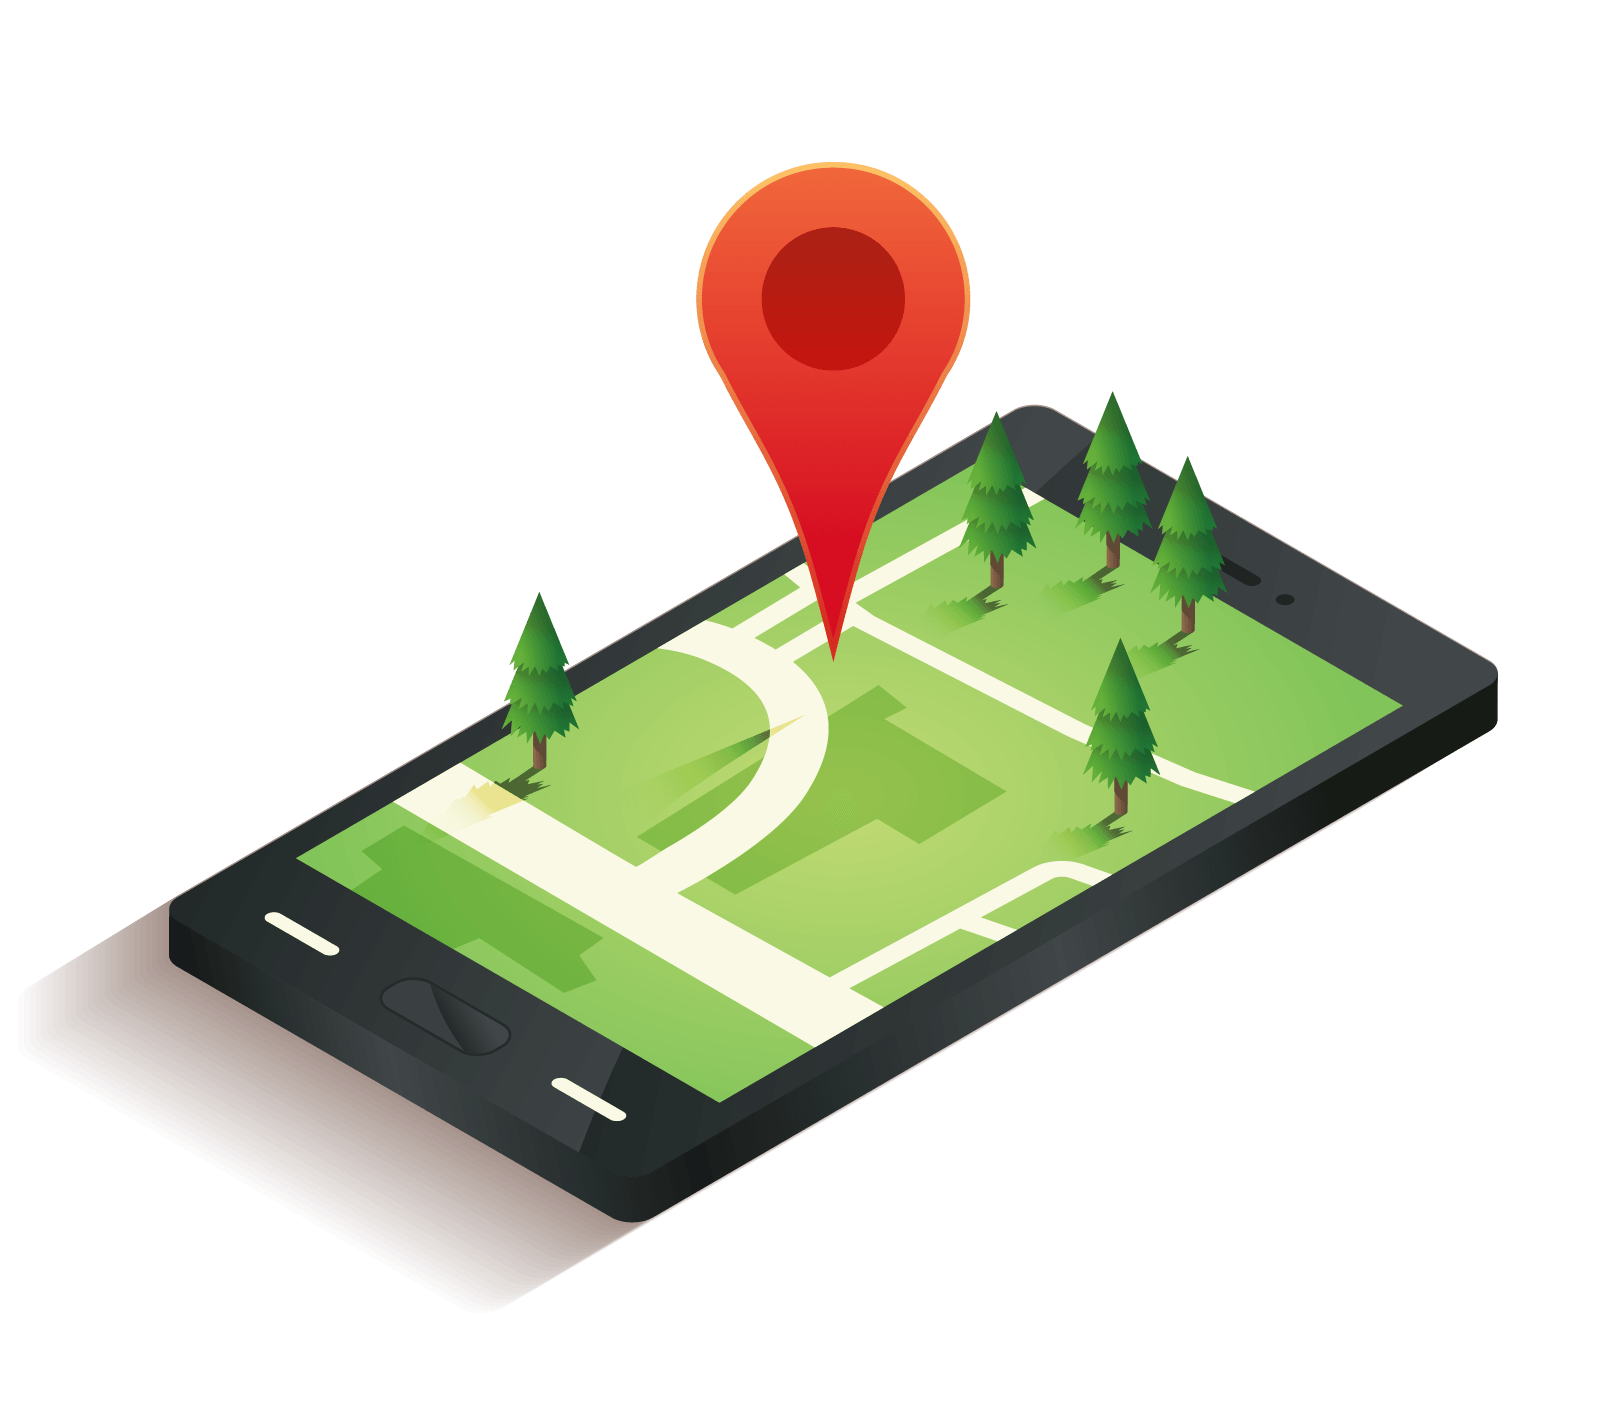 Customer reviews and mobile search engine marketing by Marlik Group online marketing agency